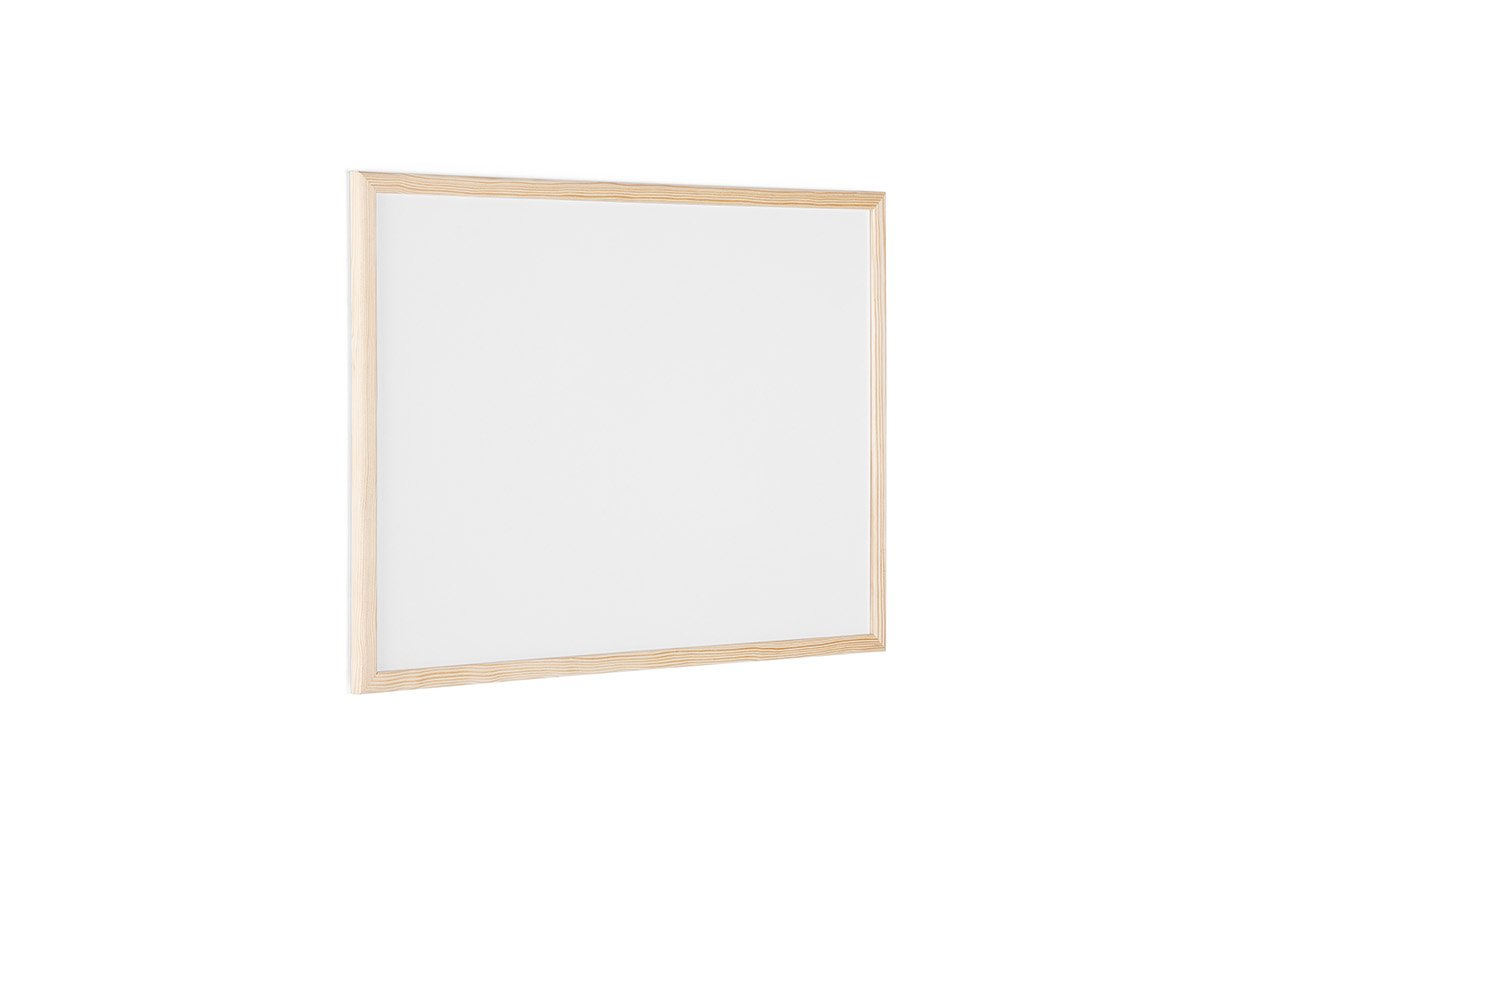 Amazon.com : Bi-Office 152662 - Melamined whiteboard Wood ...